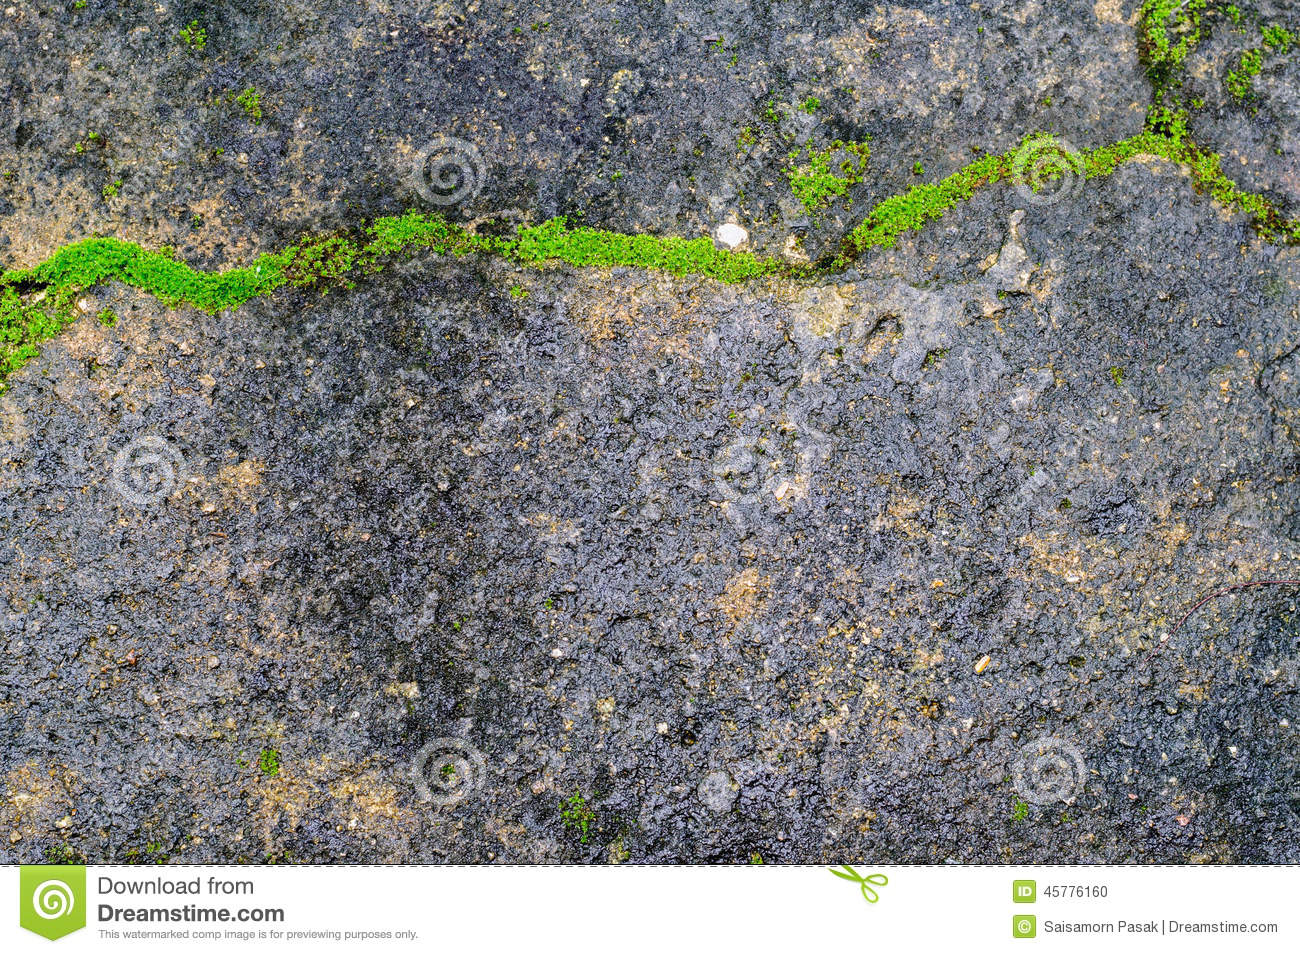 Green Plant Growing Out Of Floor Concrete With Cracked